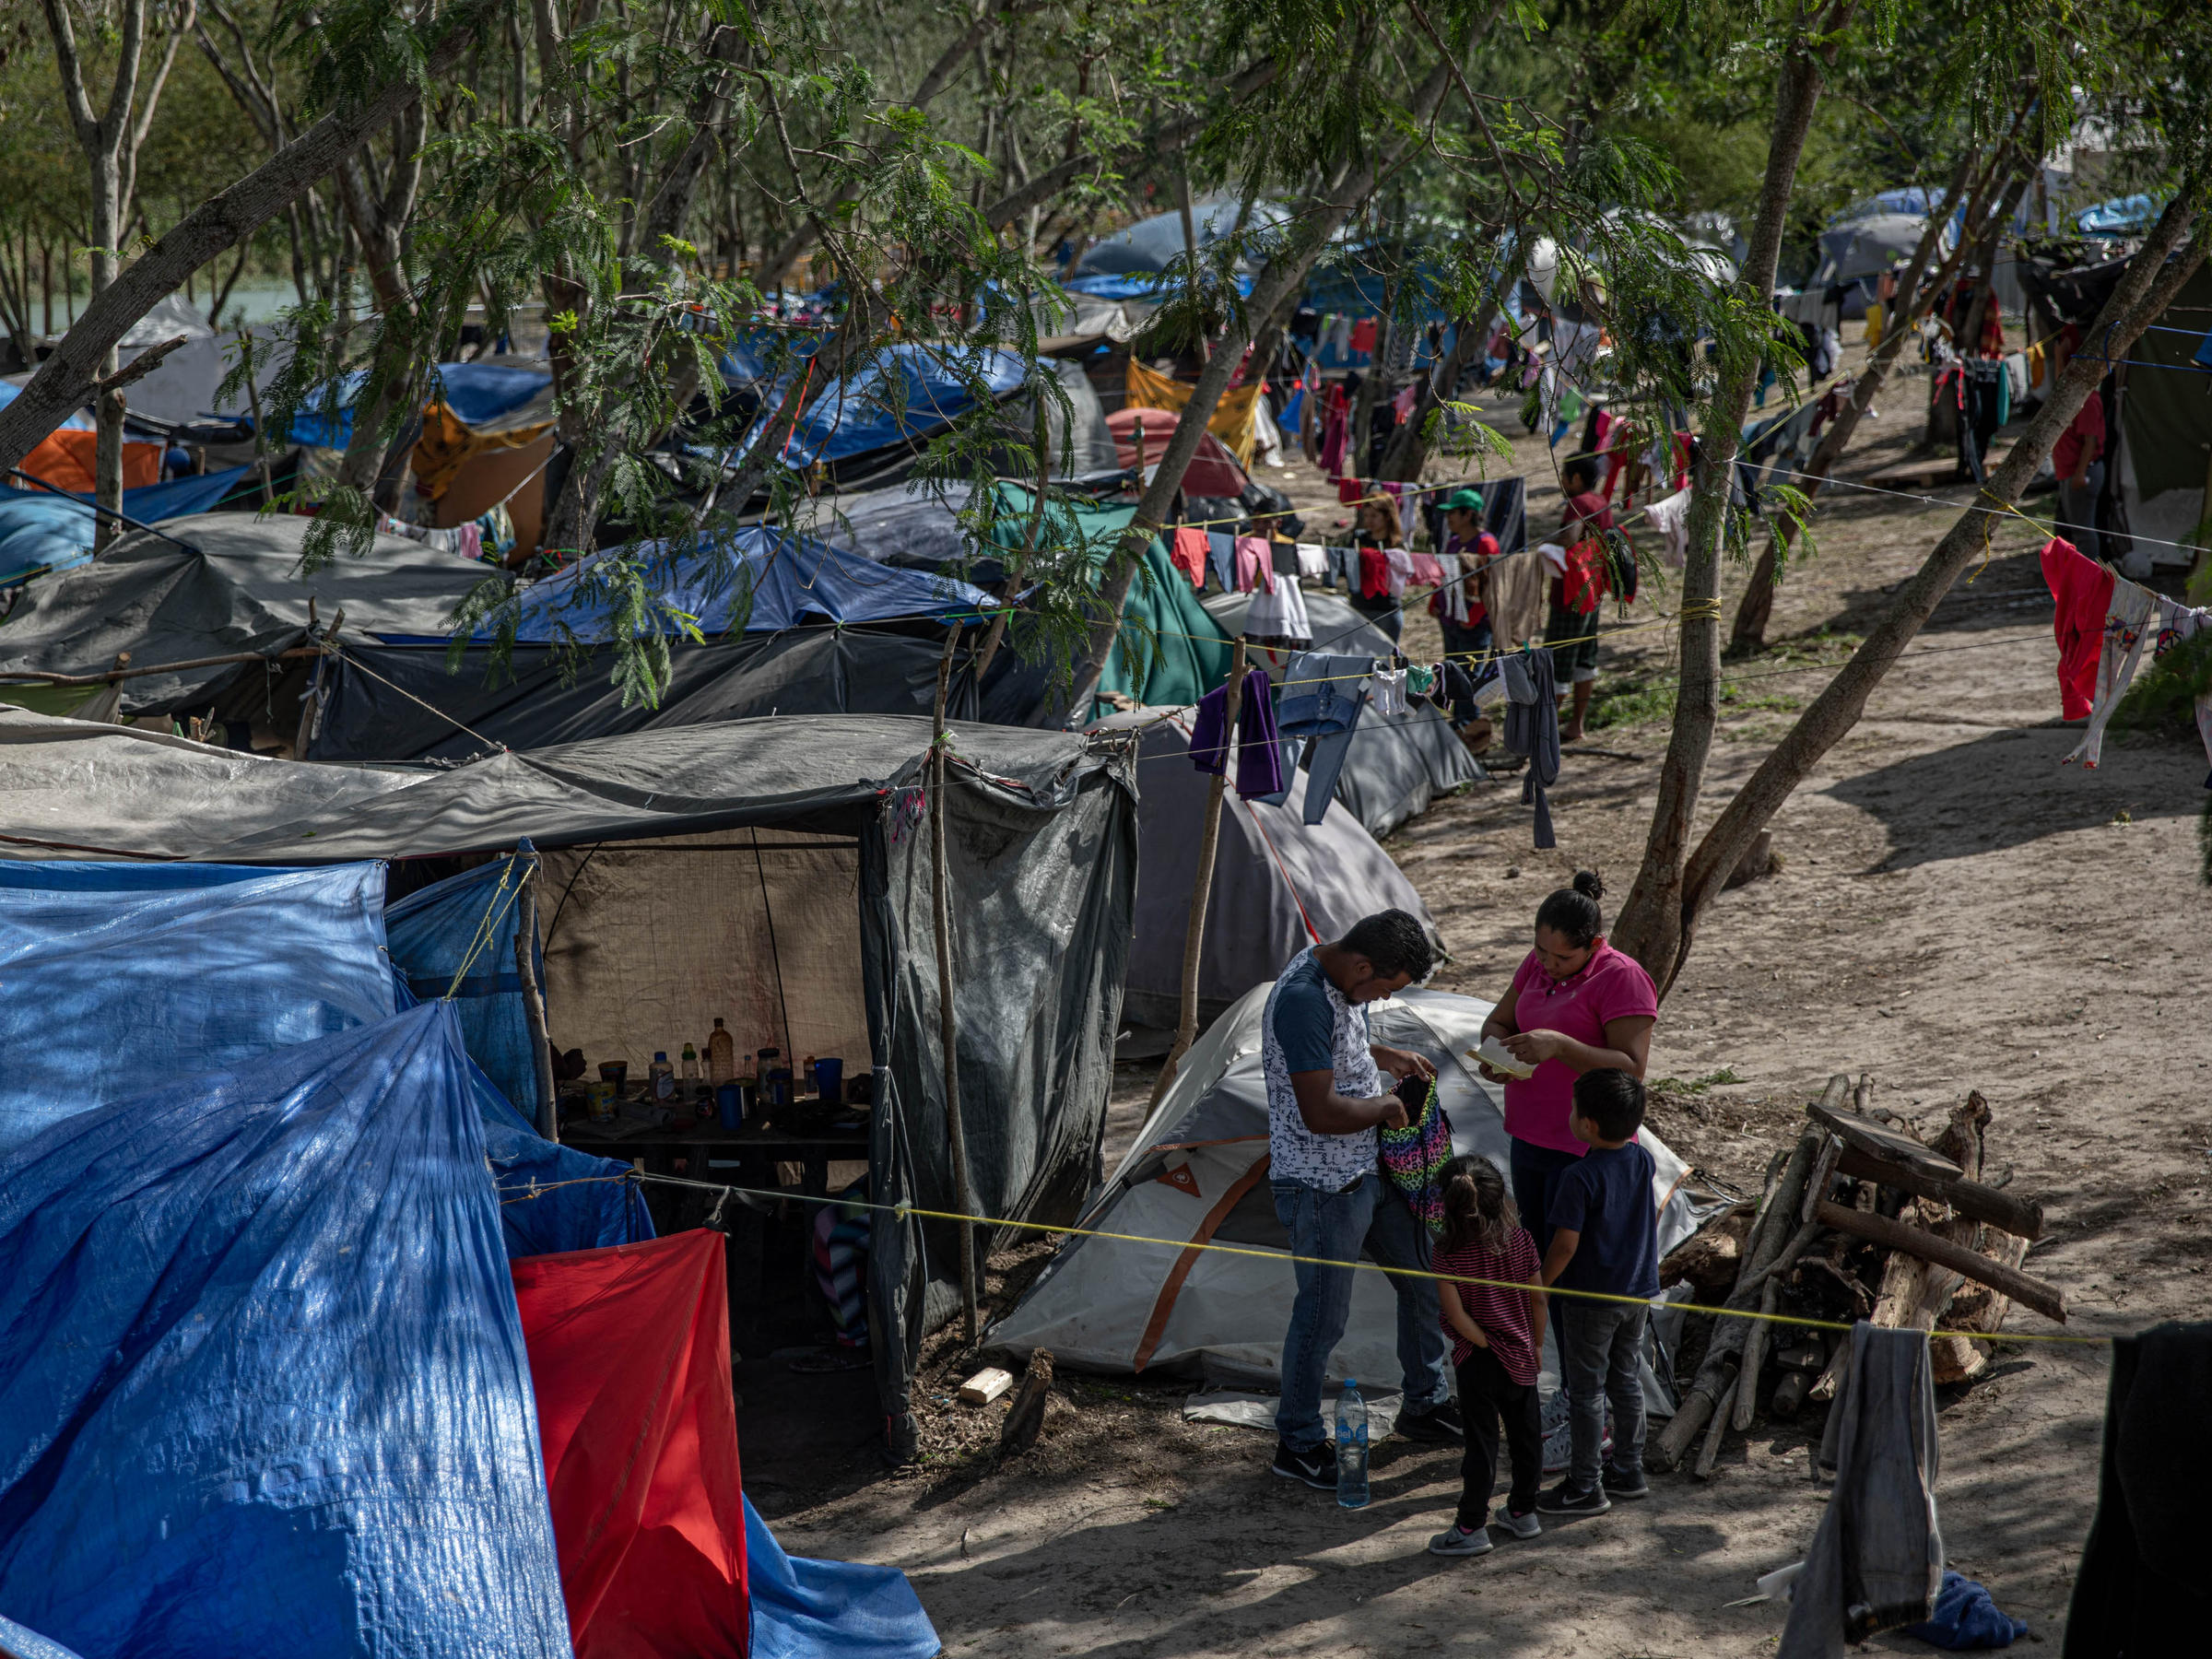 United States supreme court upholds policy of making asylum seekers wait in Mexico